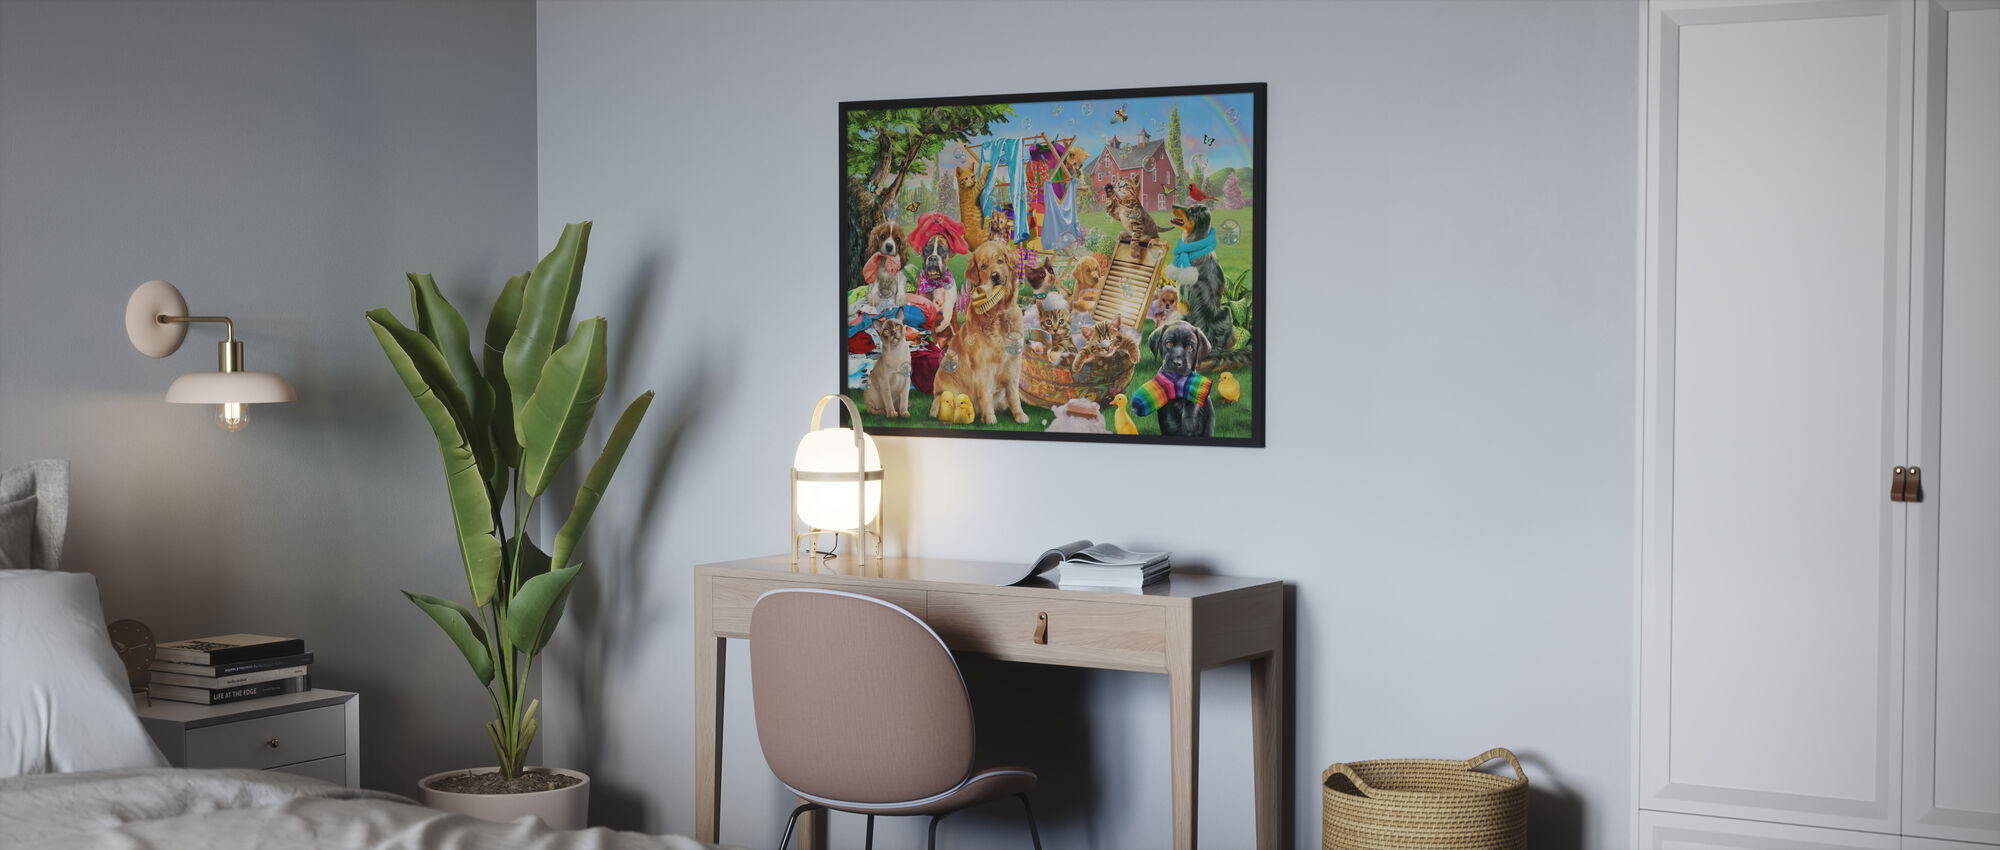 Pets On Wash Day - Poster - Bedroom